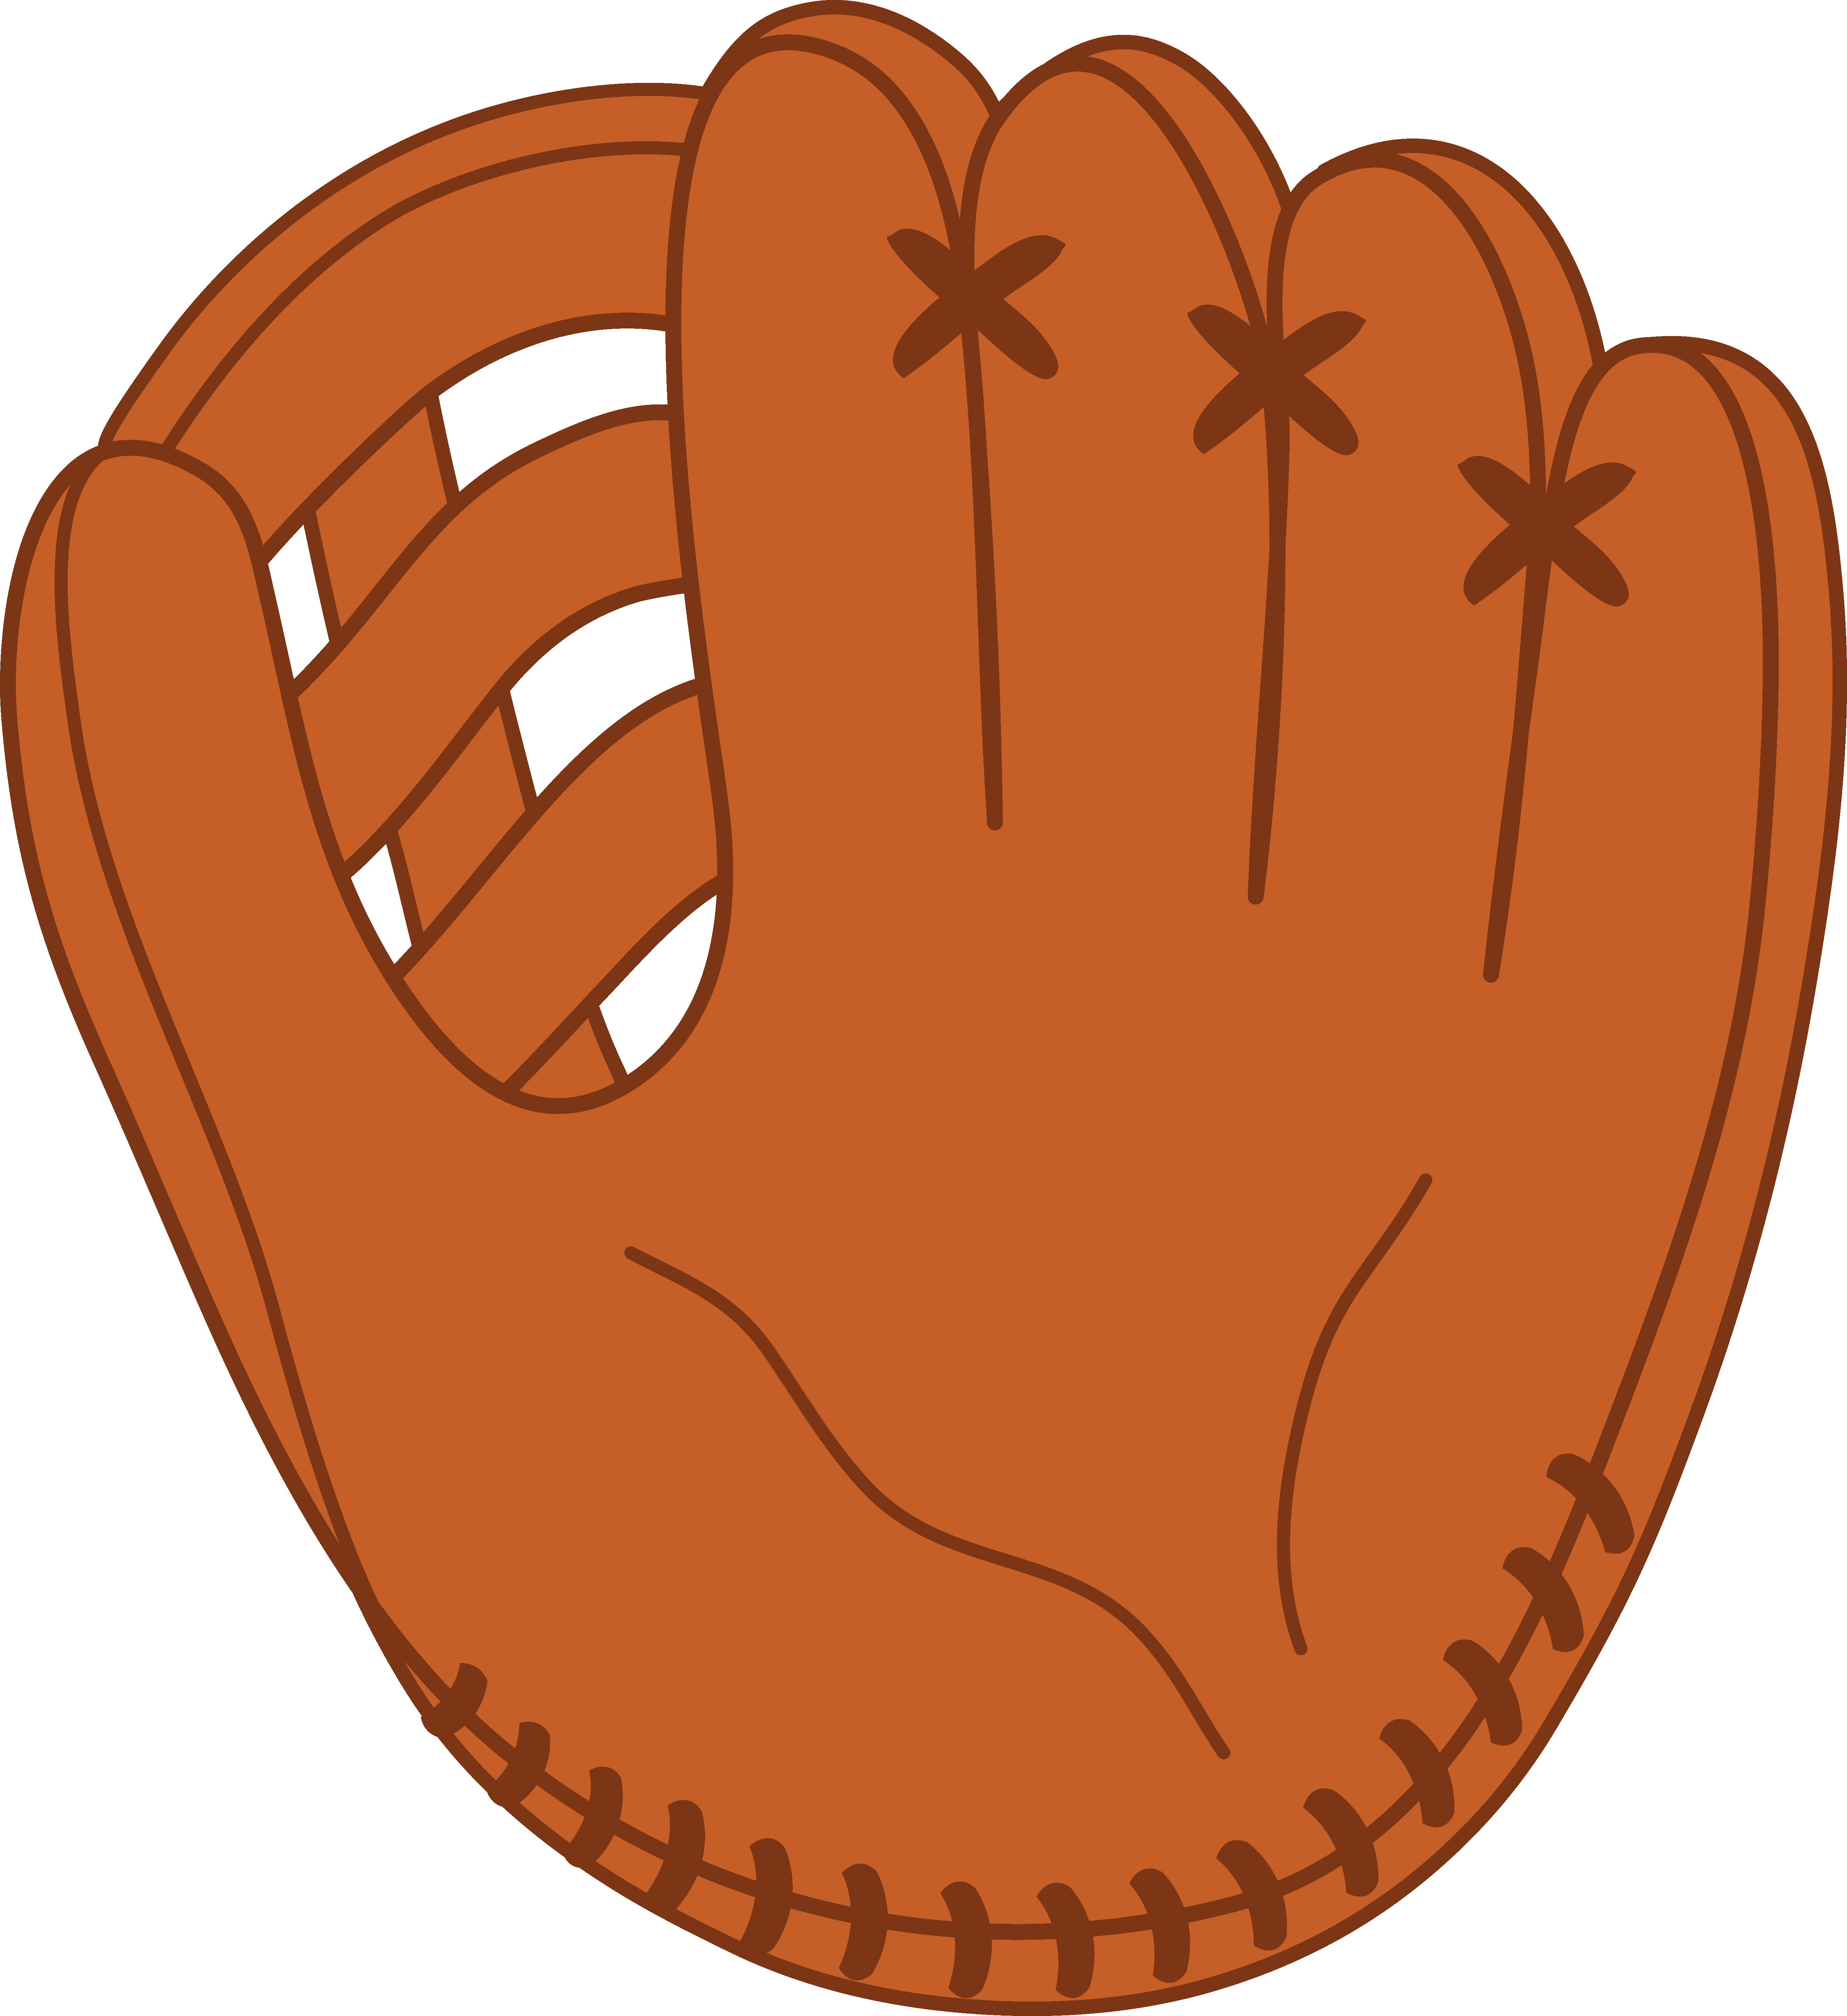 Baseball glove clipart free